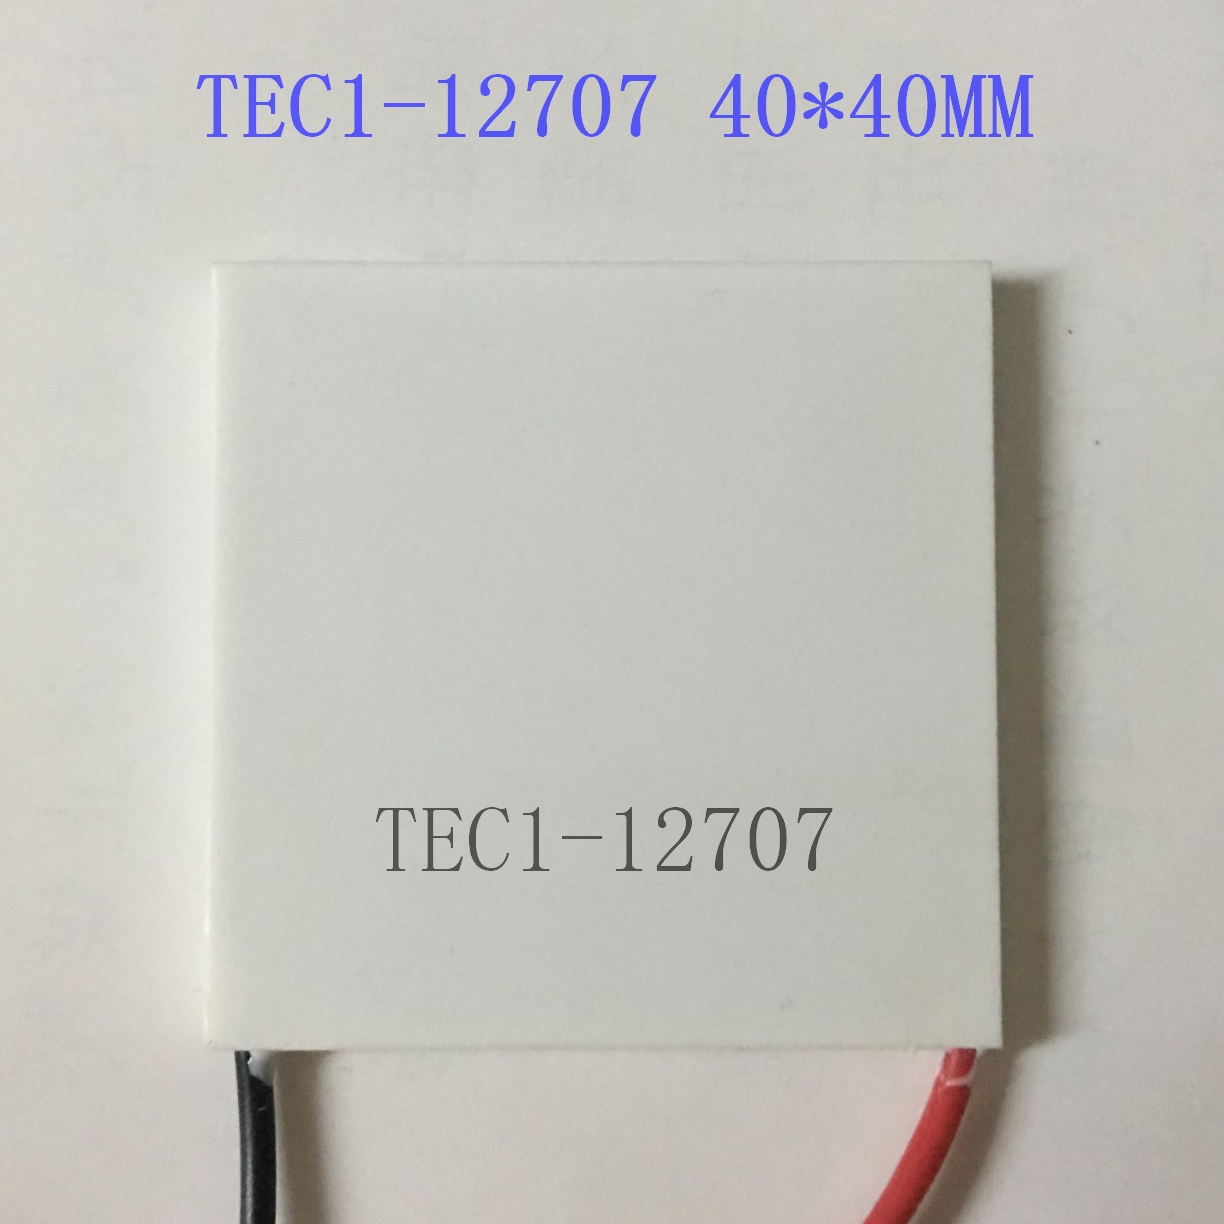 TEC1-12707 40*40MM 12V7A semiconductor cooling plate drinking water machine refrigerator refrigerator cooling plateTEC1-12707 40*40MM 12V7A semiconductor cooling plate drinking water machine refrigerator refrigerator cooling plate